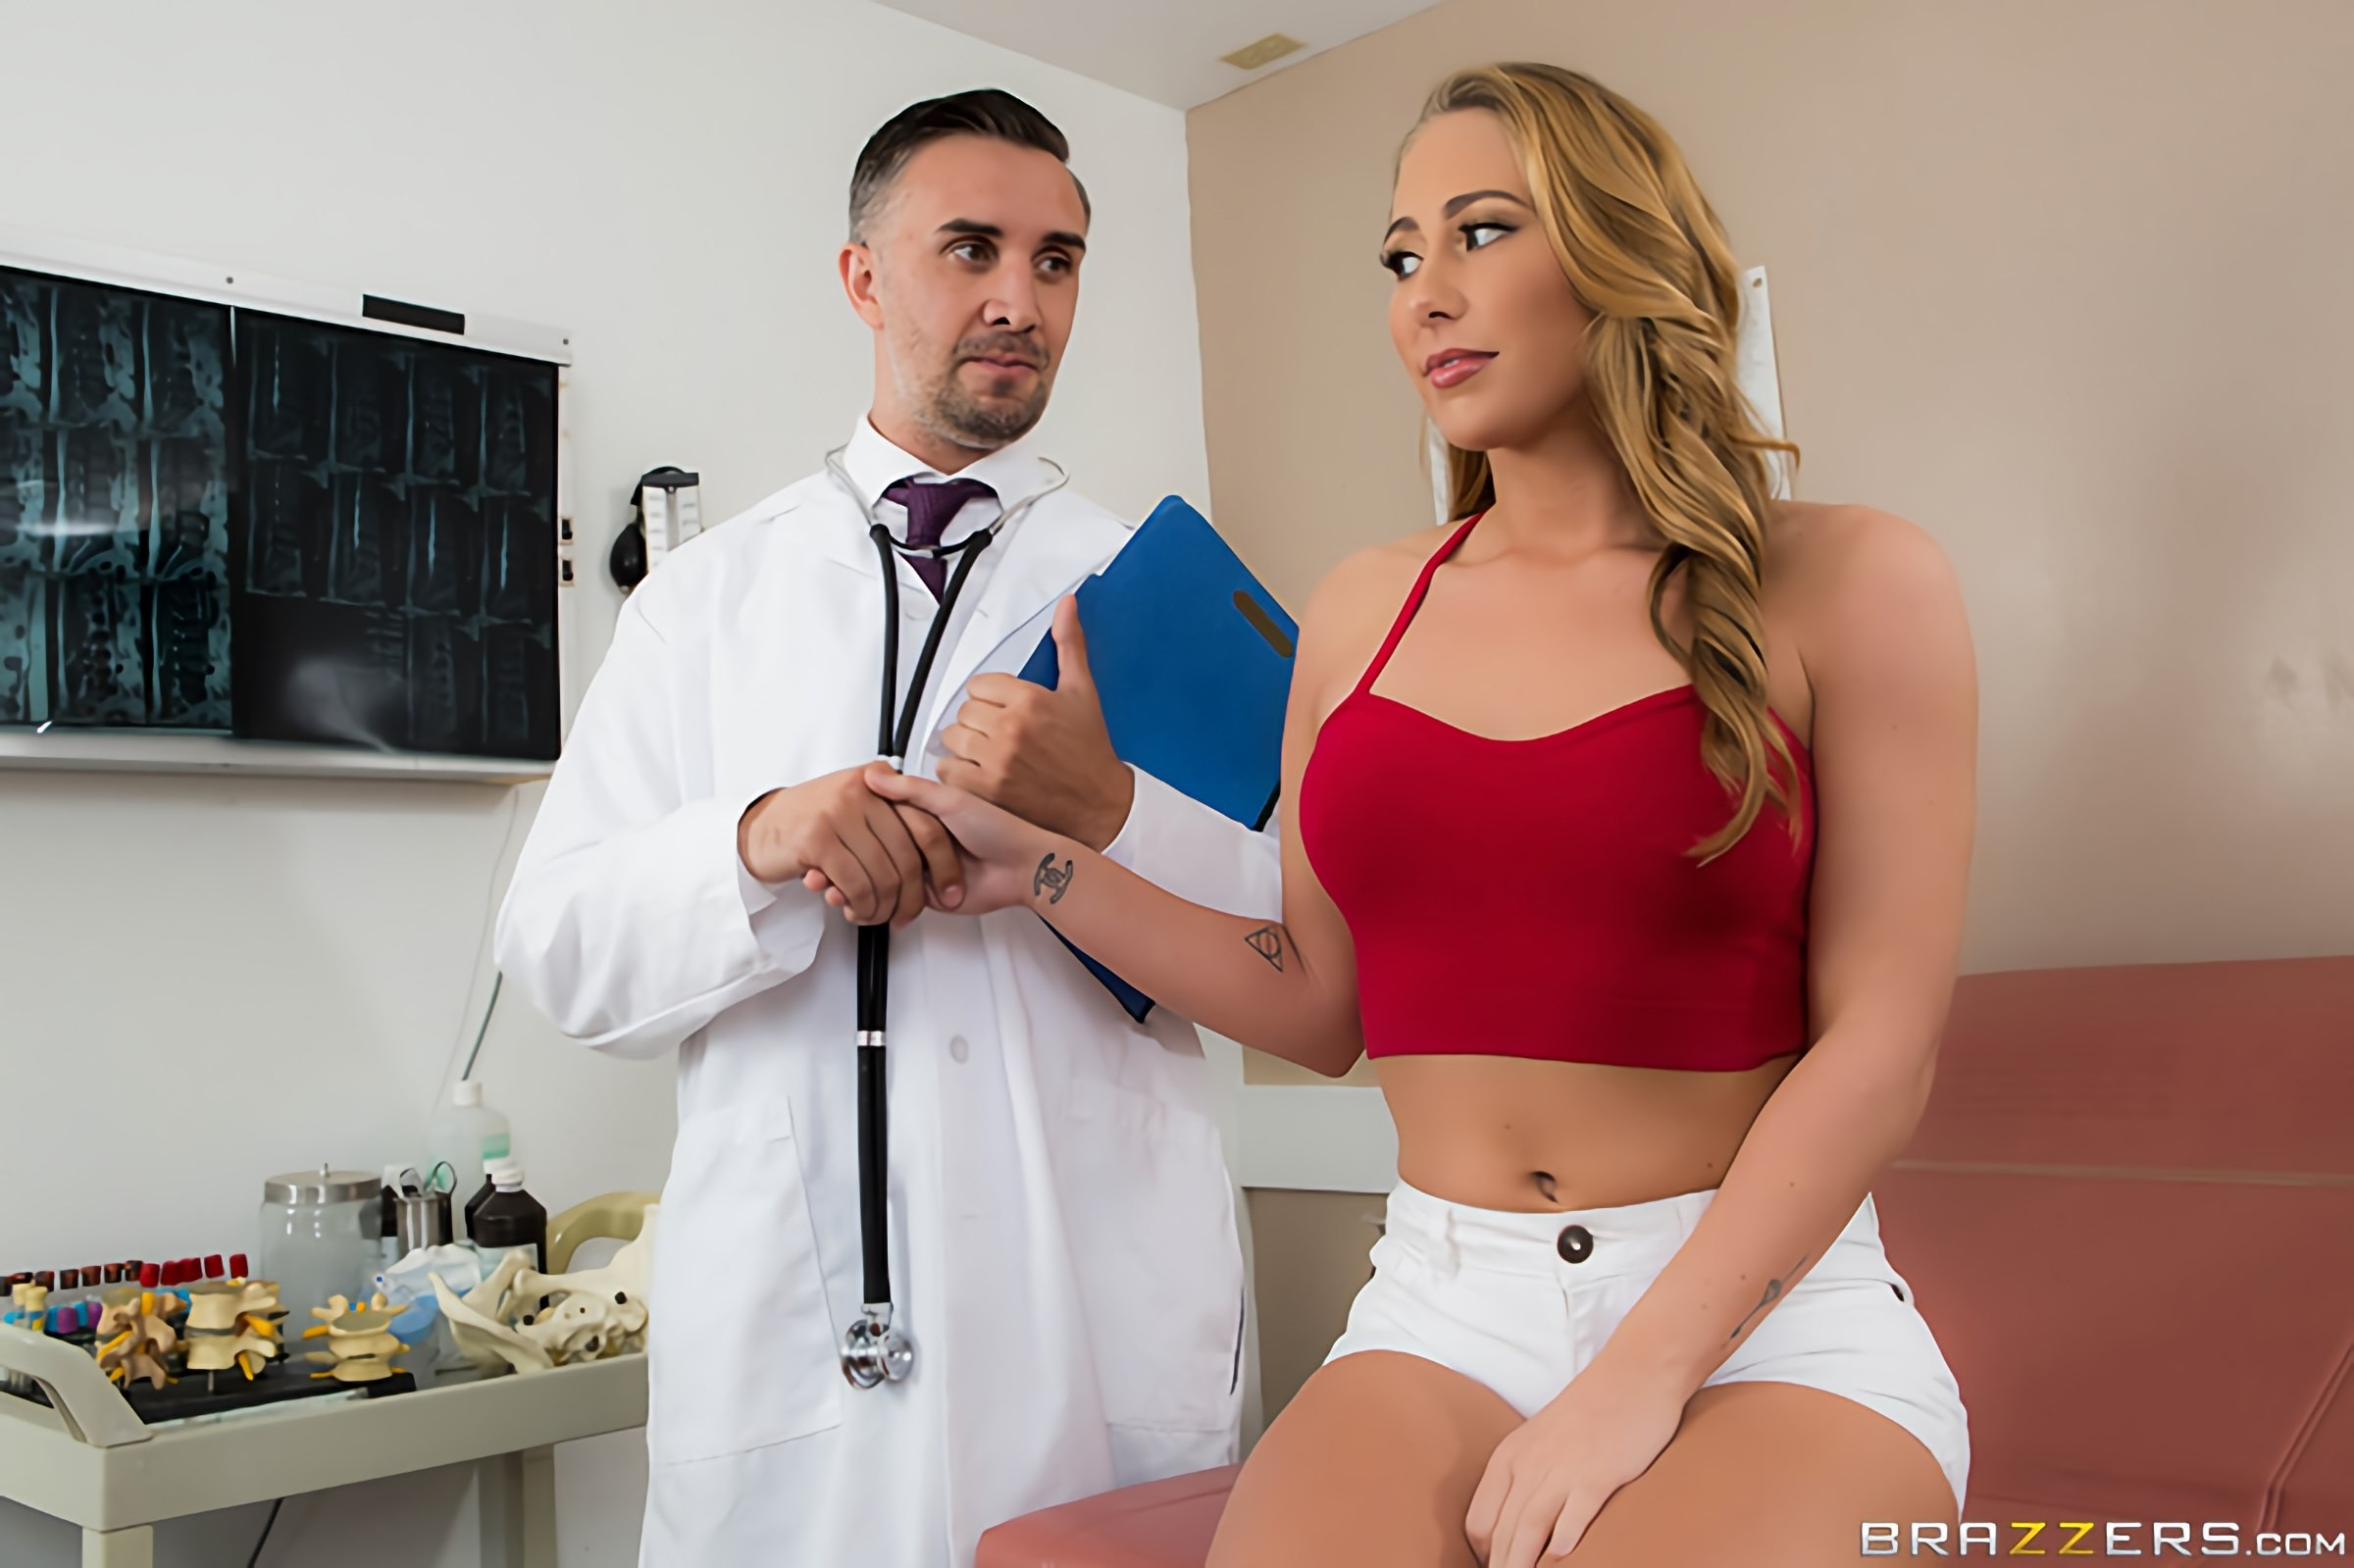 Brazzers 'The Placebo' starring Carter Cruise (Photo 1)